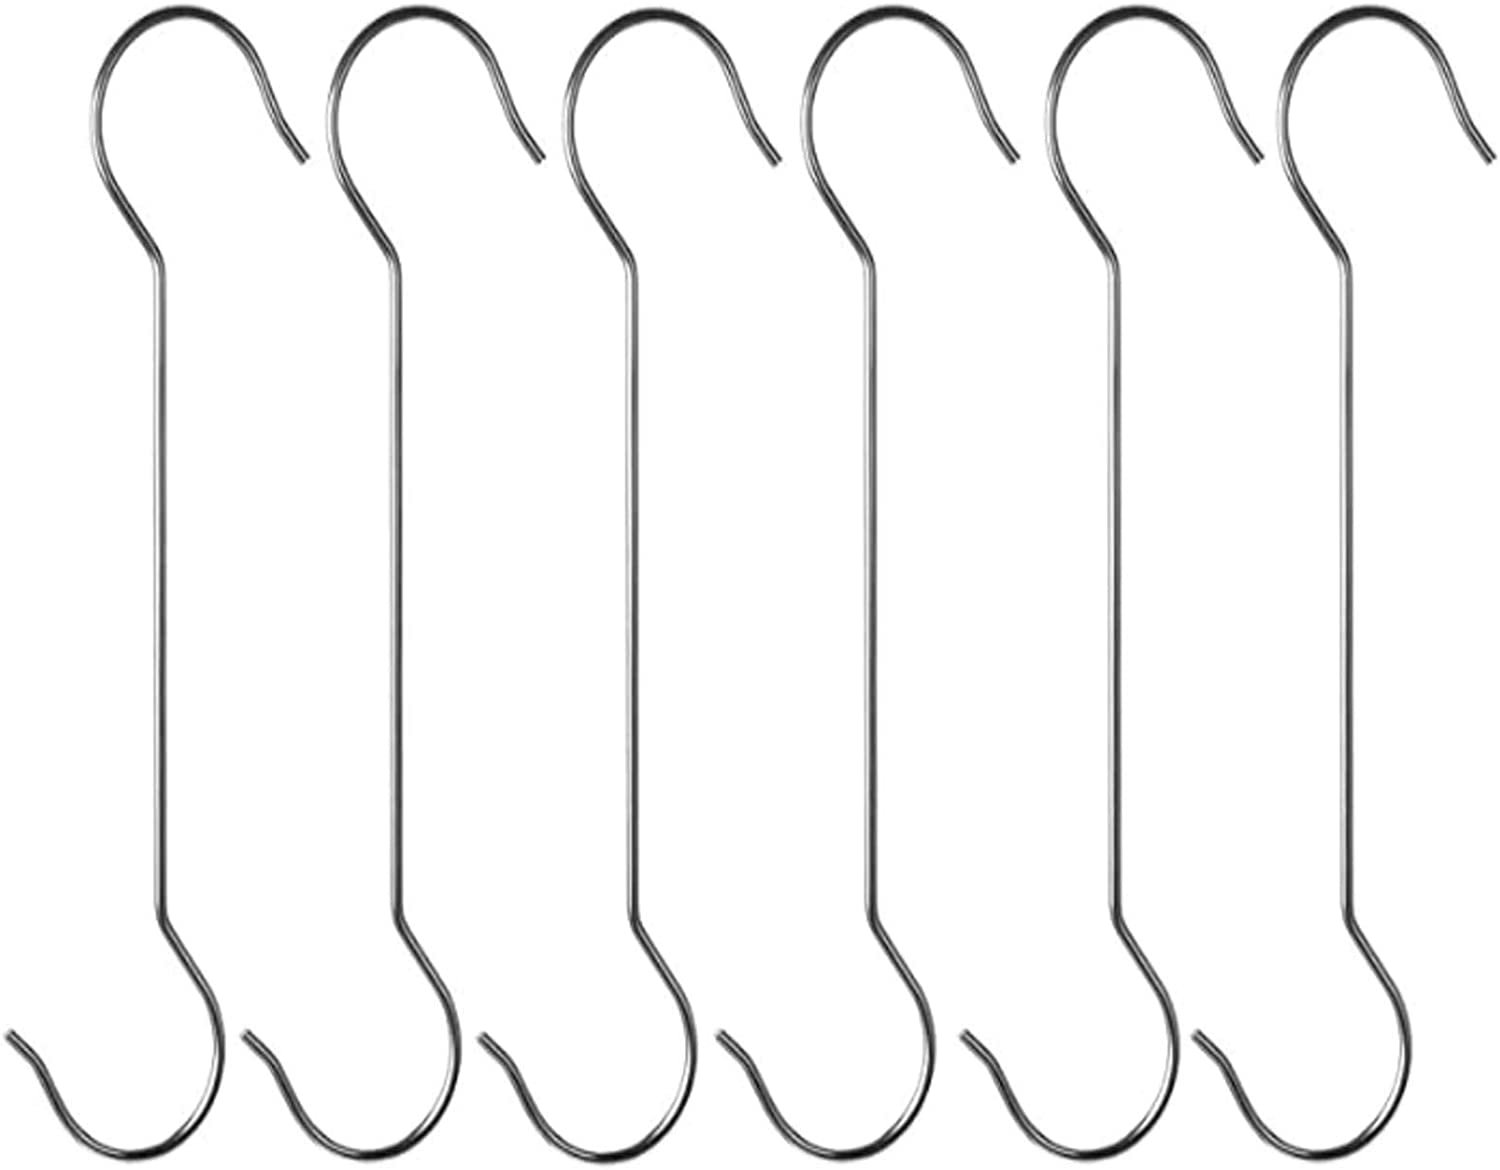 16 Inch Extra Large Heavy Duty Long Outdoor Plant Hanging S Hooks - for Baskets, Bird Feeders, Wind Chimes, Garden Ornaments,Pergola,Closet,Flower Basket,Indoor Outdoor Uses (6 Pack)